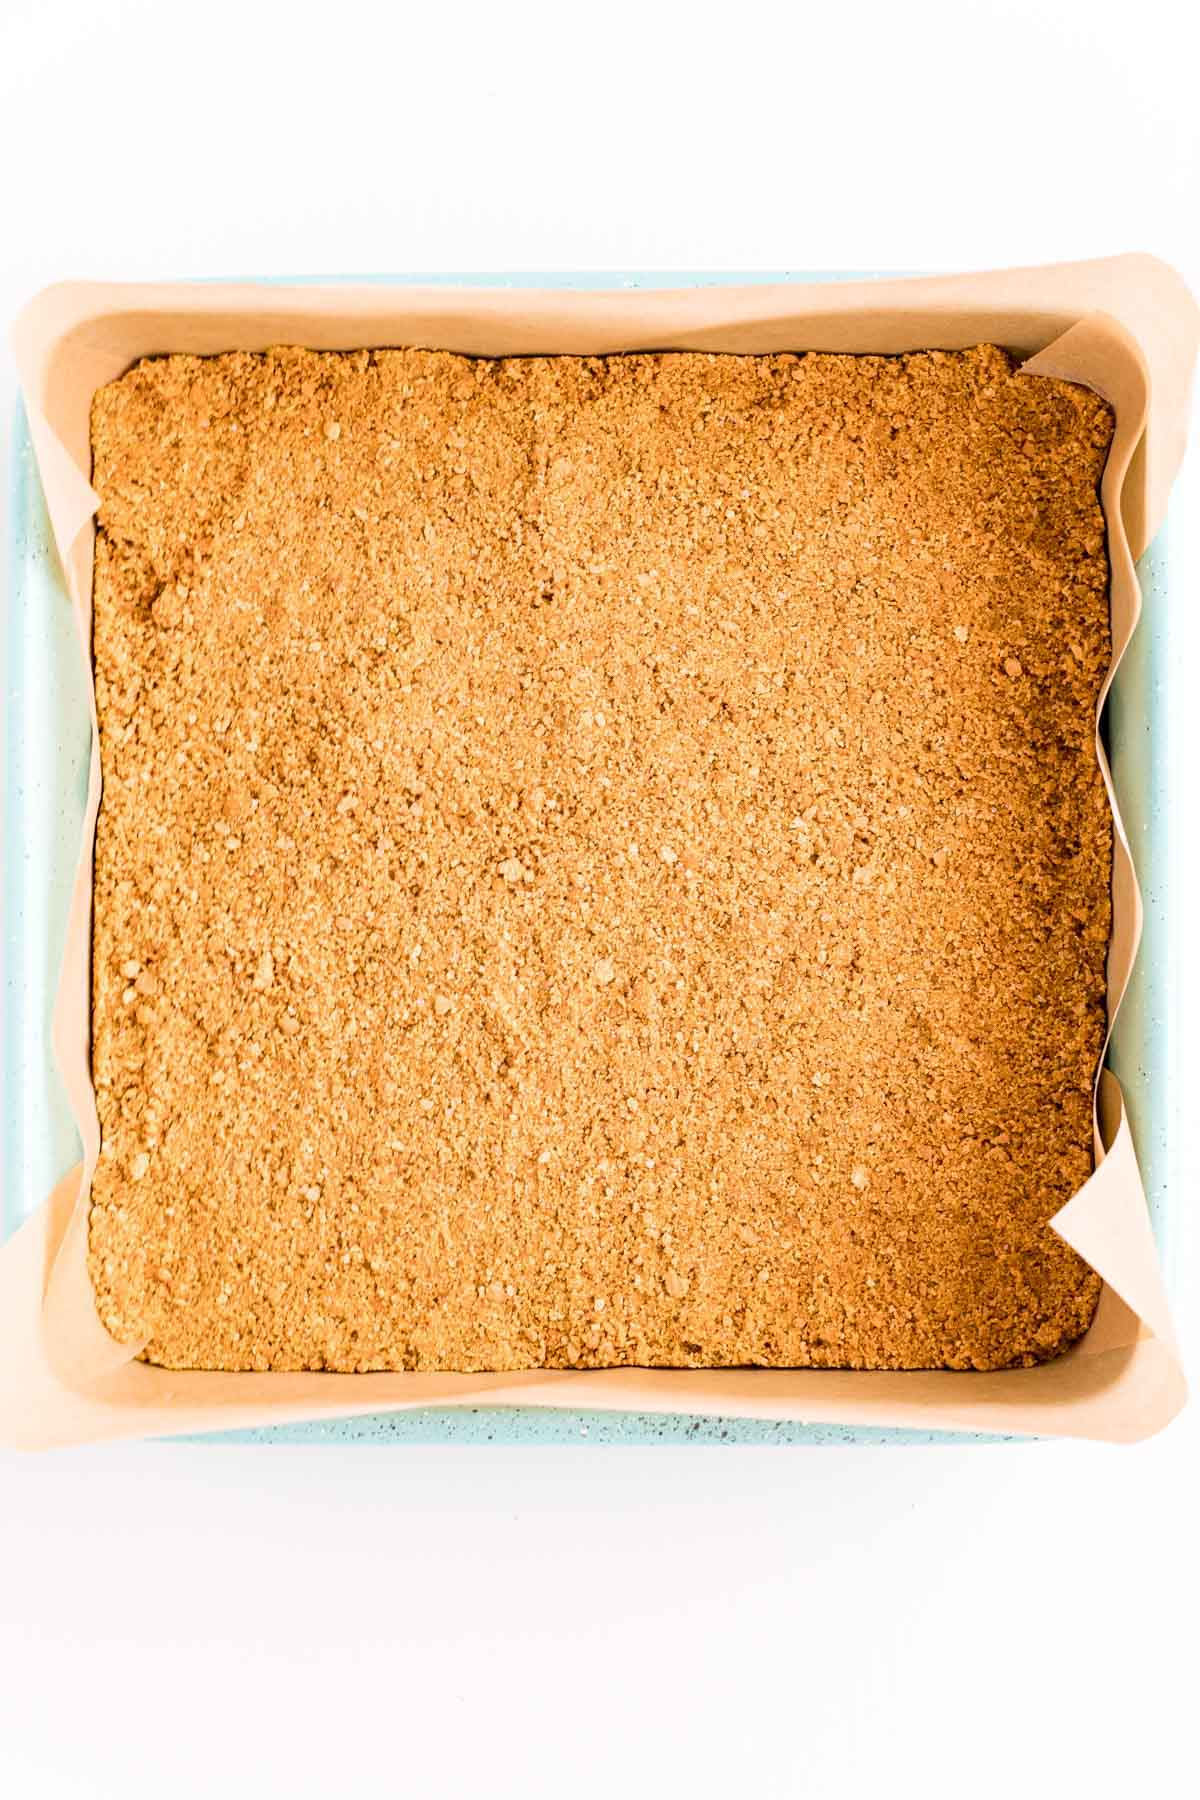 square baking pan with a graham cracker crust